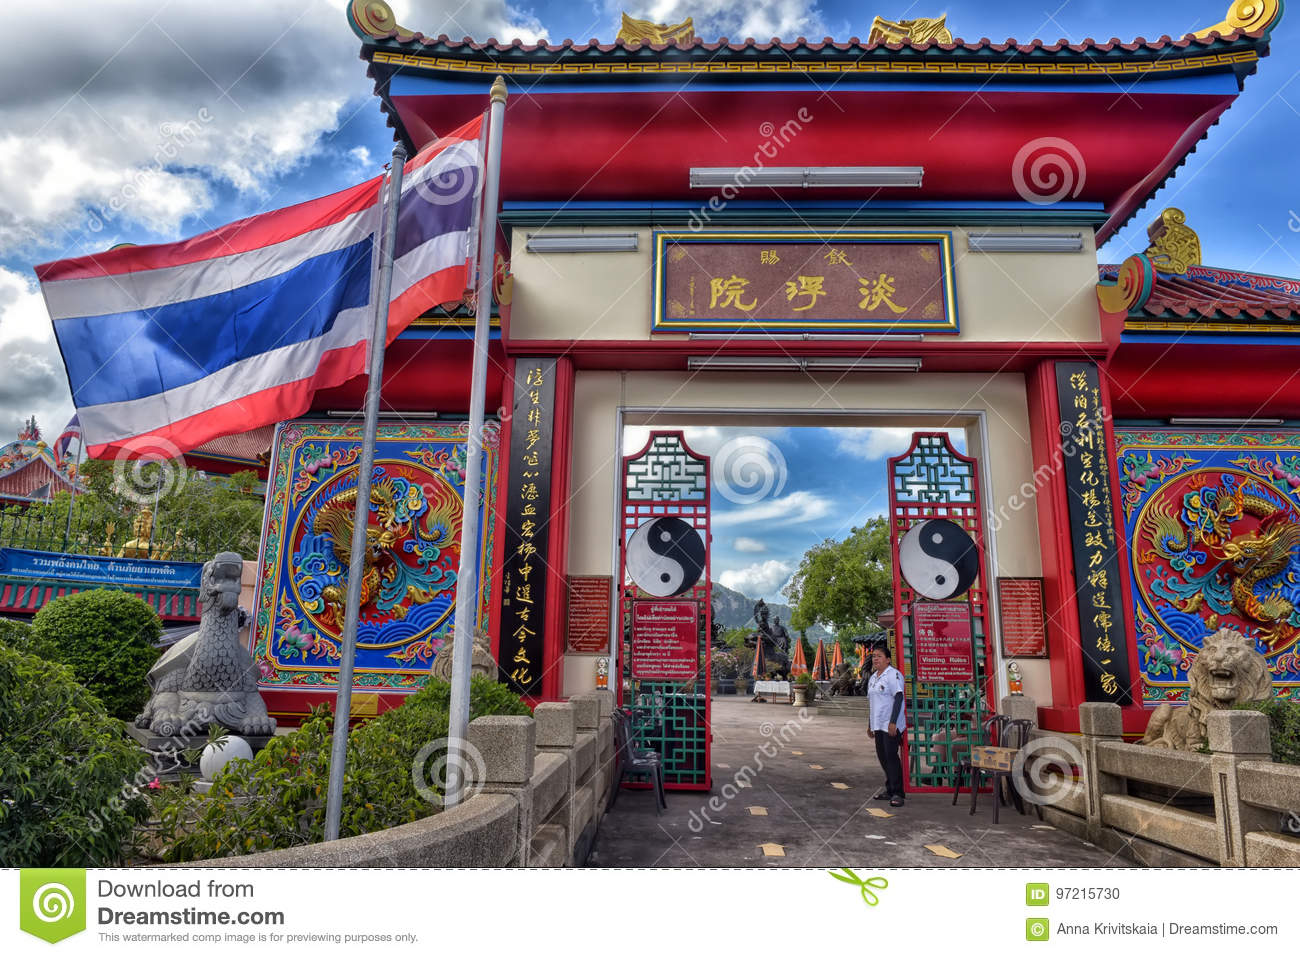 Exterior of the entrance to the Anek Kusala Sala Viharn Sien Chinese temple in Pattaya, Thailand.